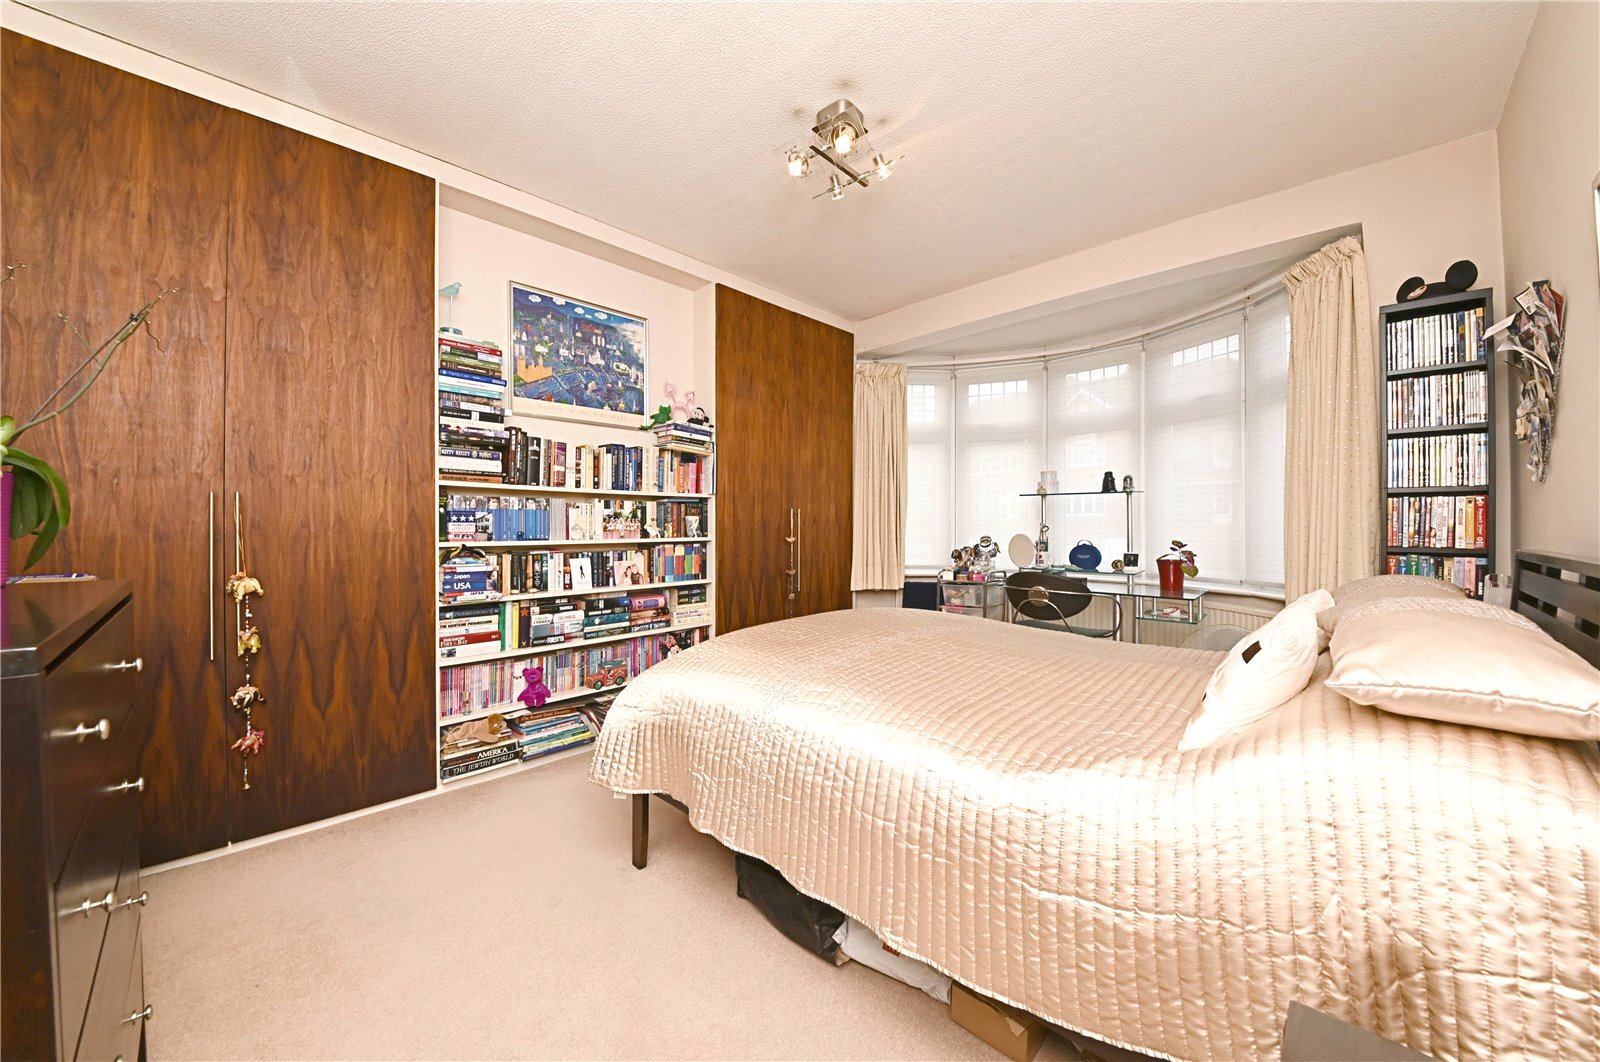 4 bed house for sale in Hendon, NW4 1LJ 9